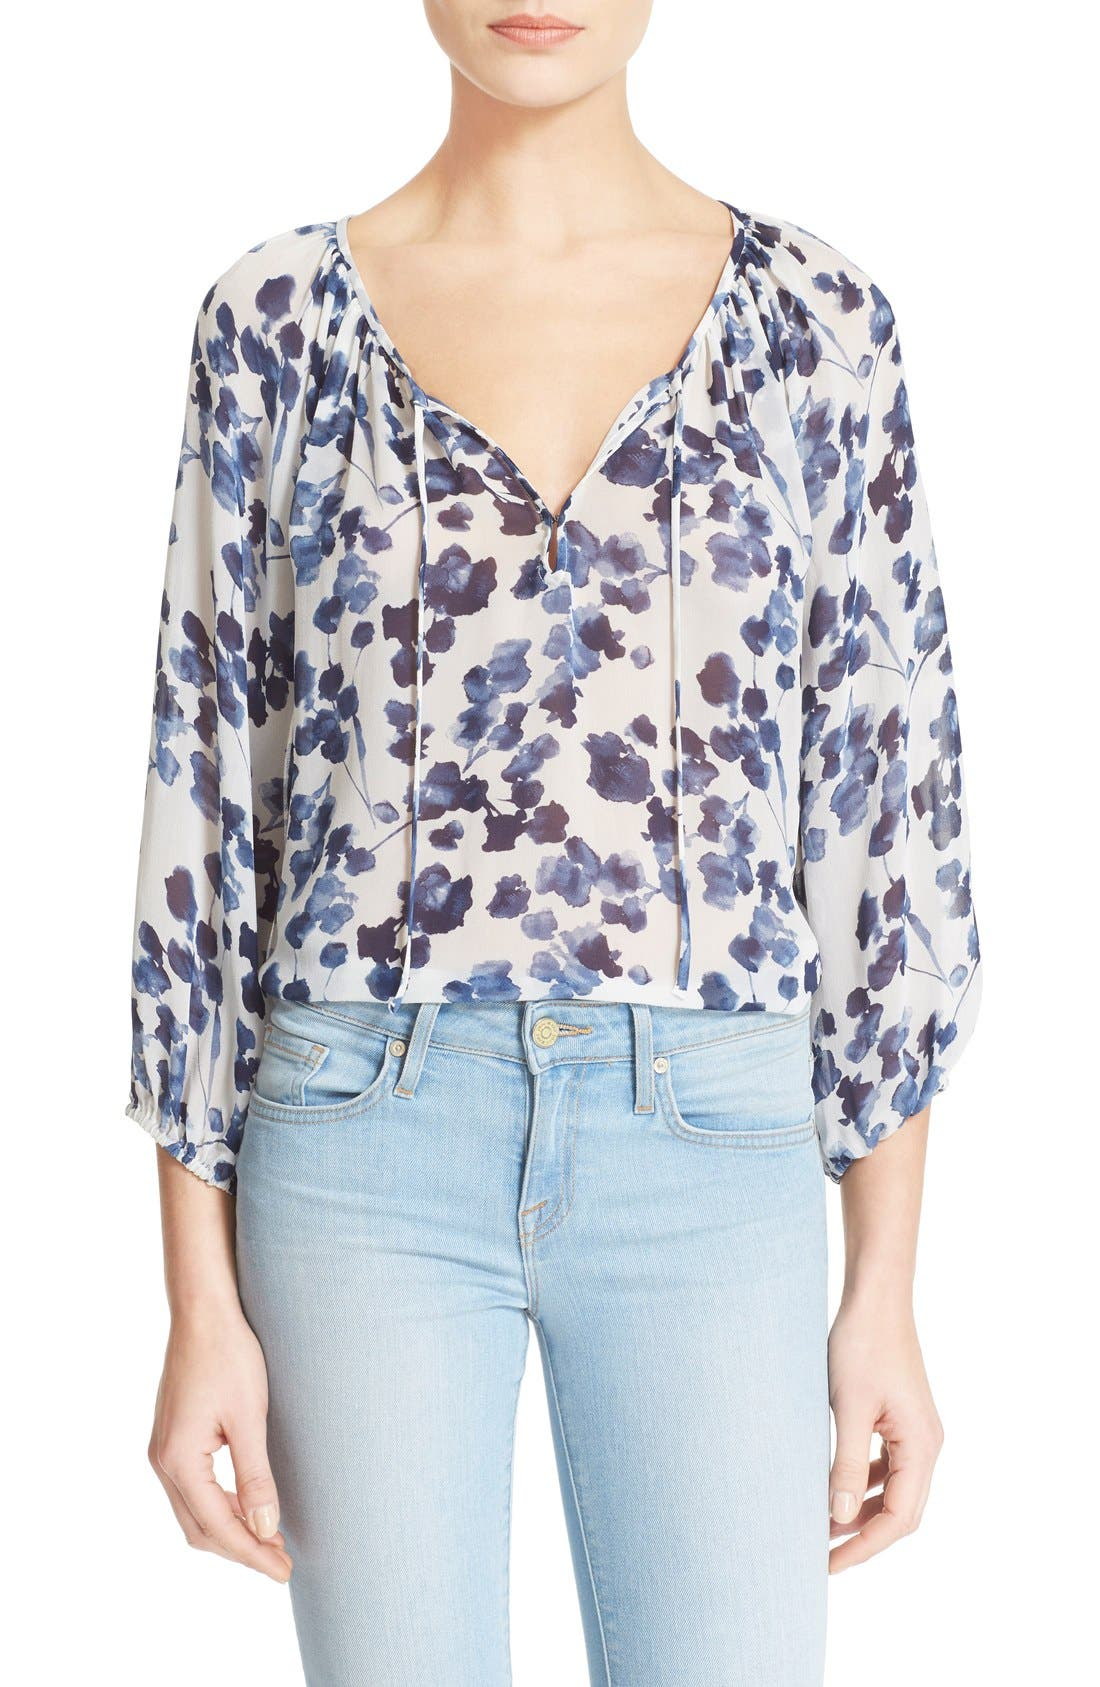 Alternate Image 1 Selected - Joie 'Roachan' Floral Print Blouse (Nordstrom Exclusive)